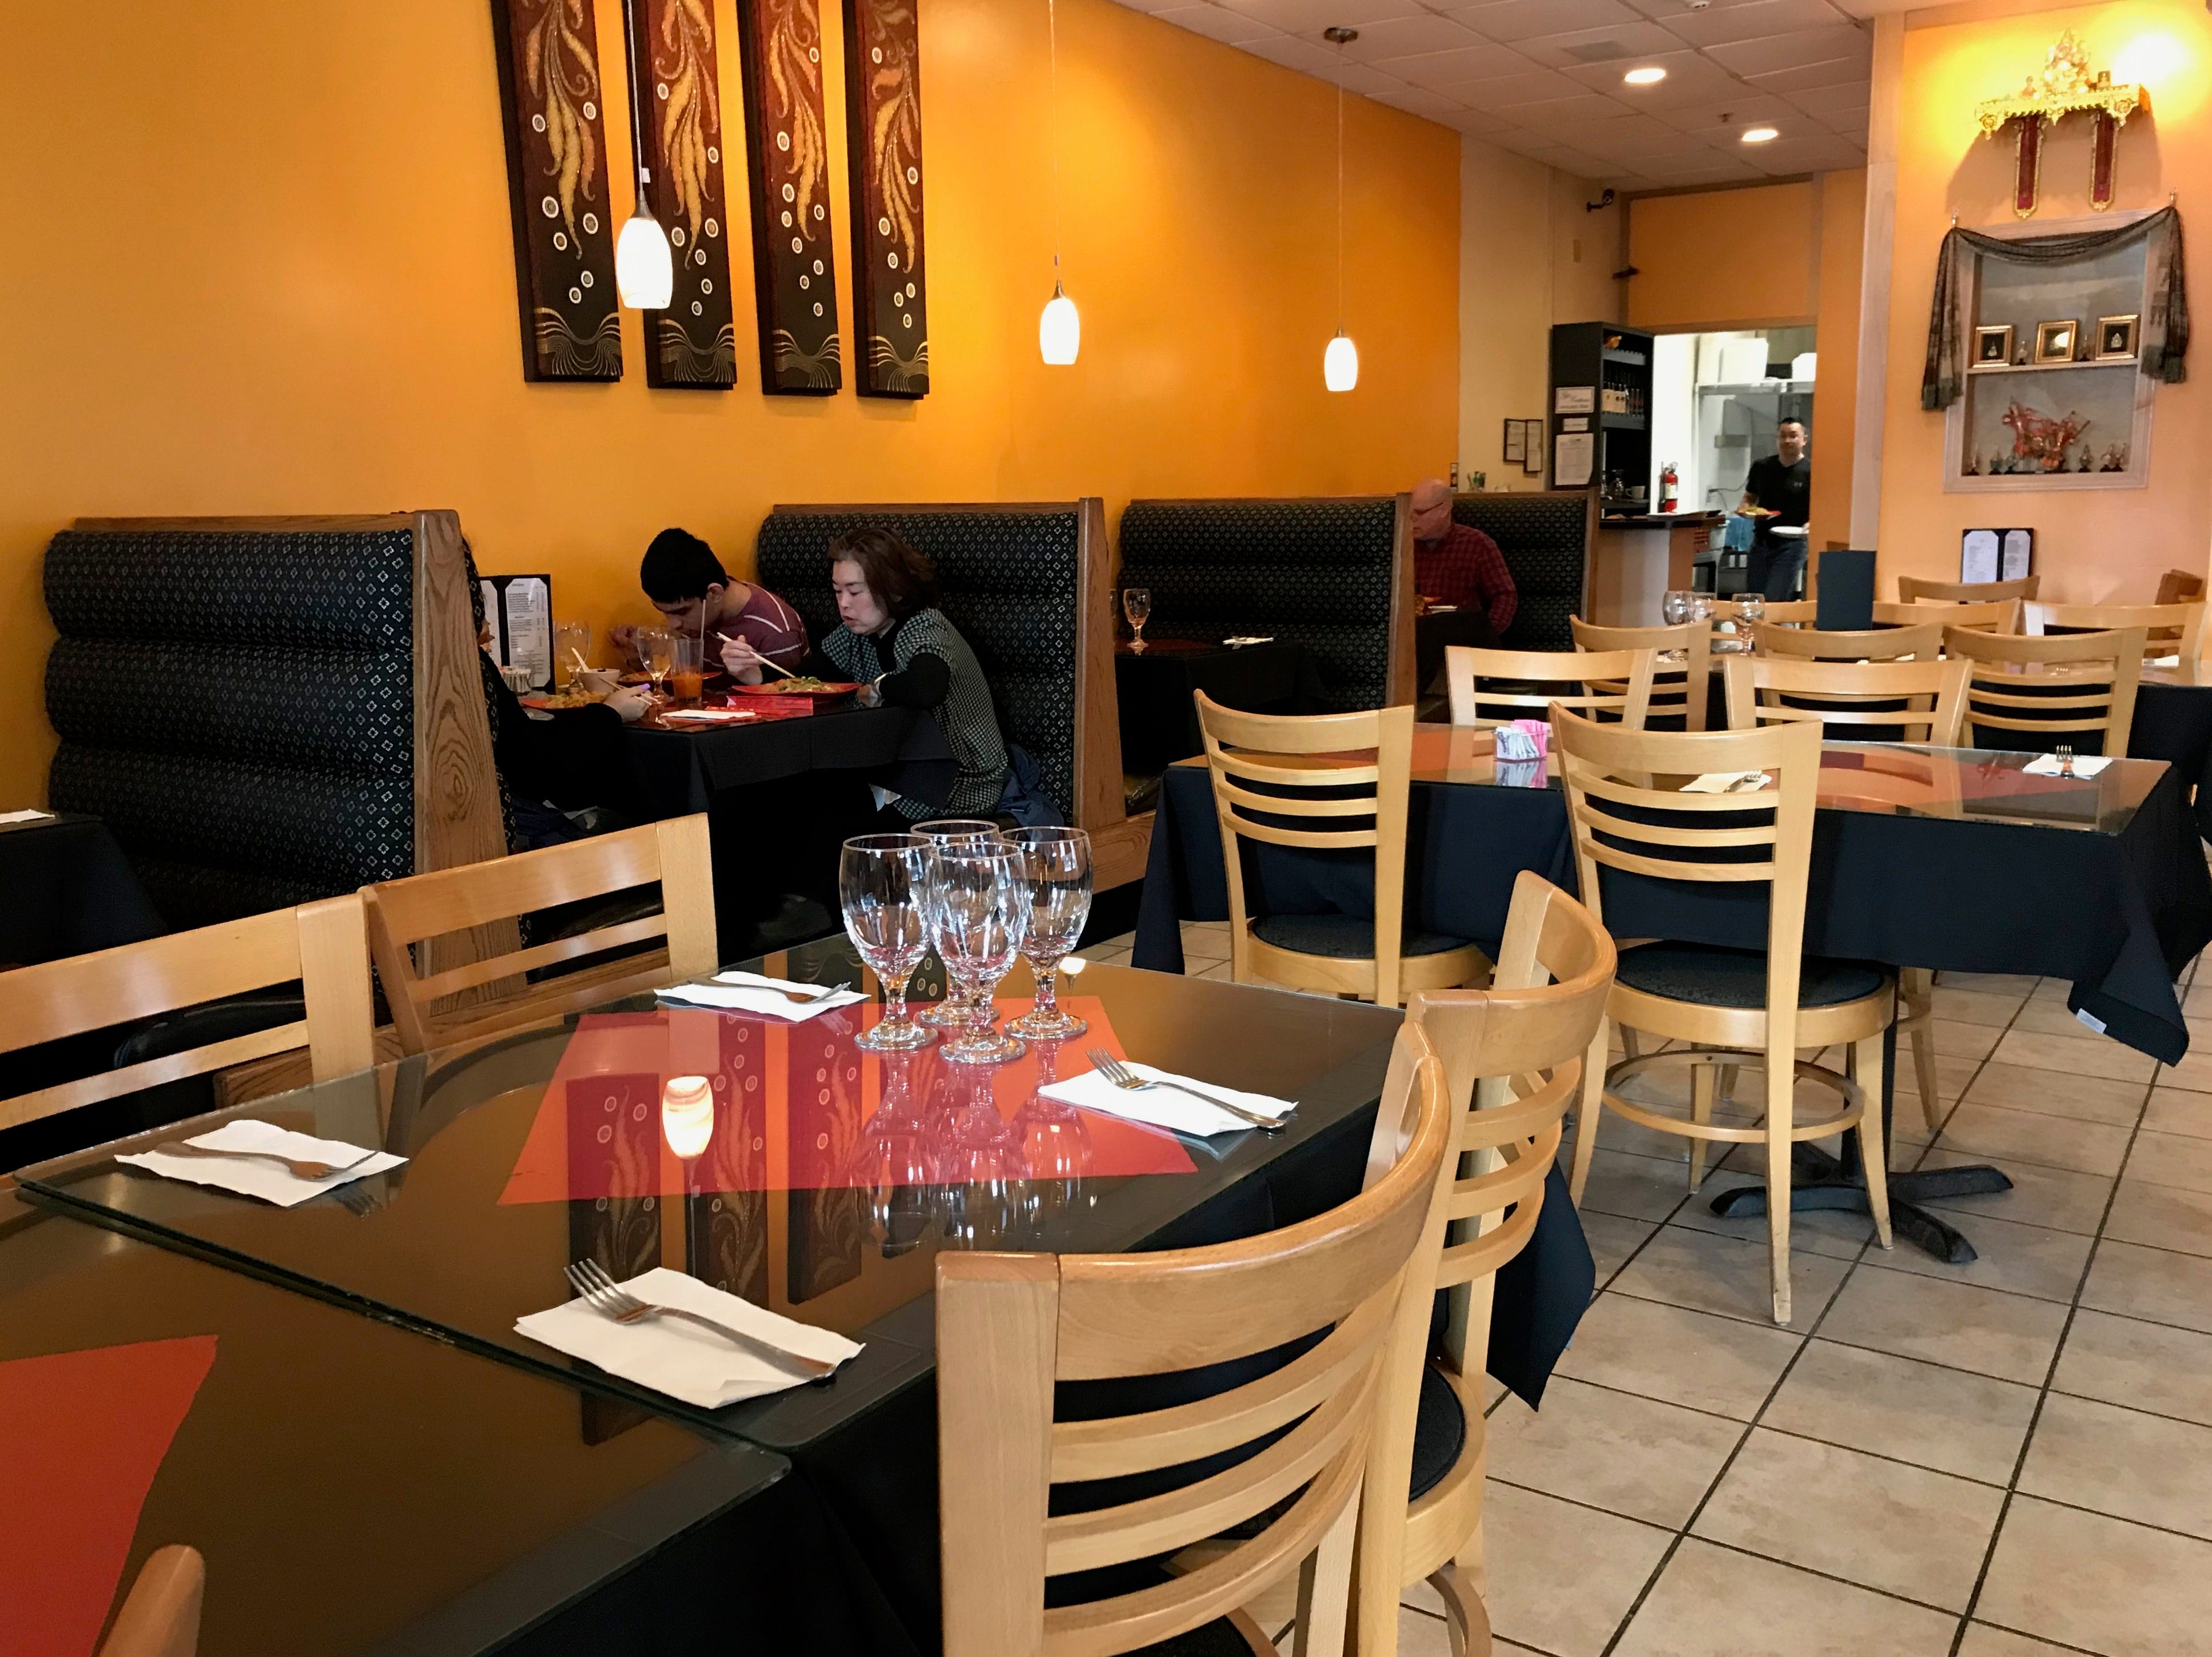 Zuzap Thai Cuisine in clive offers dine-in, delivery and order-out options.